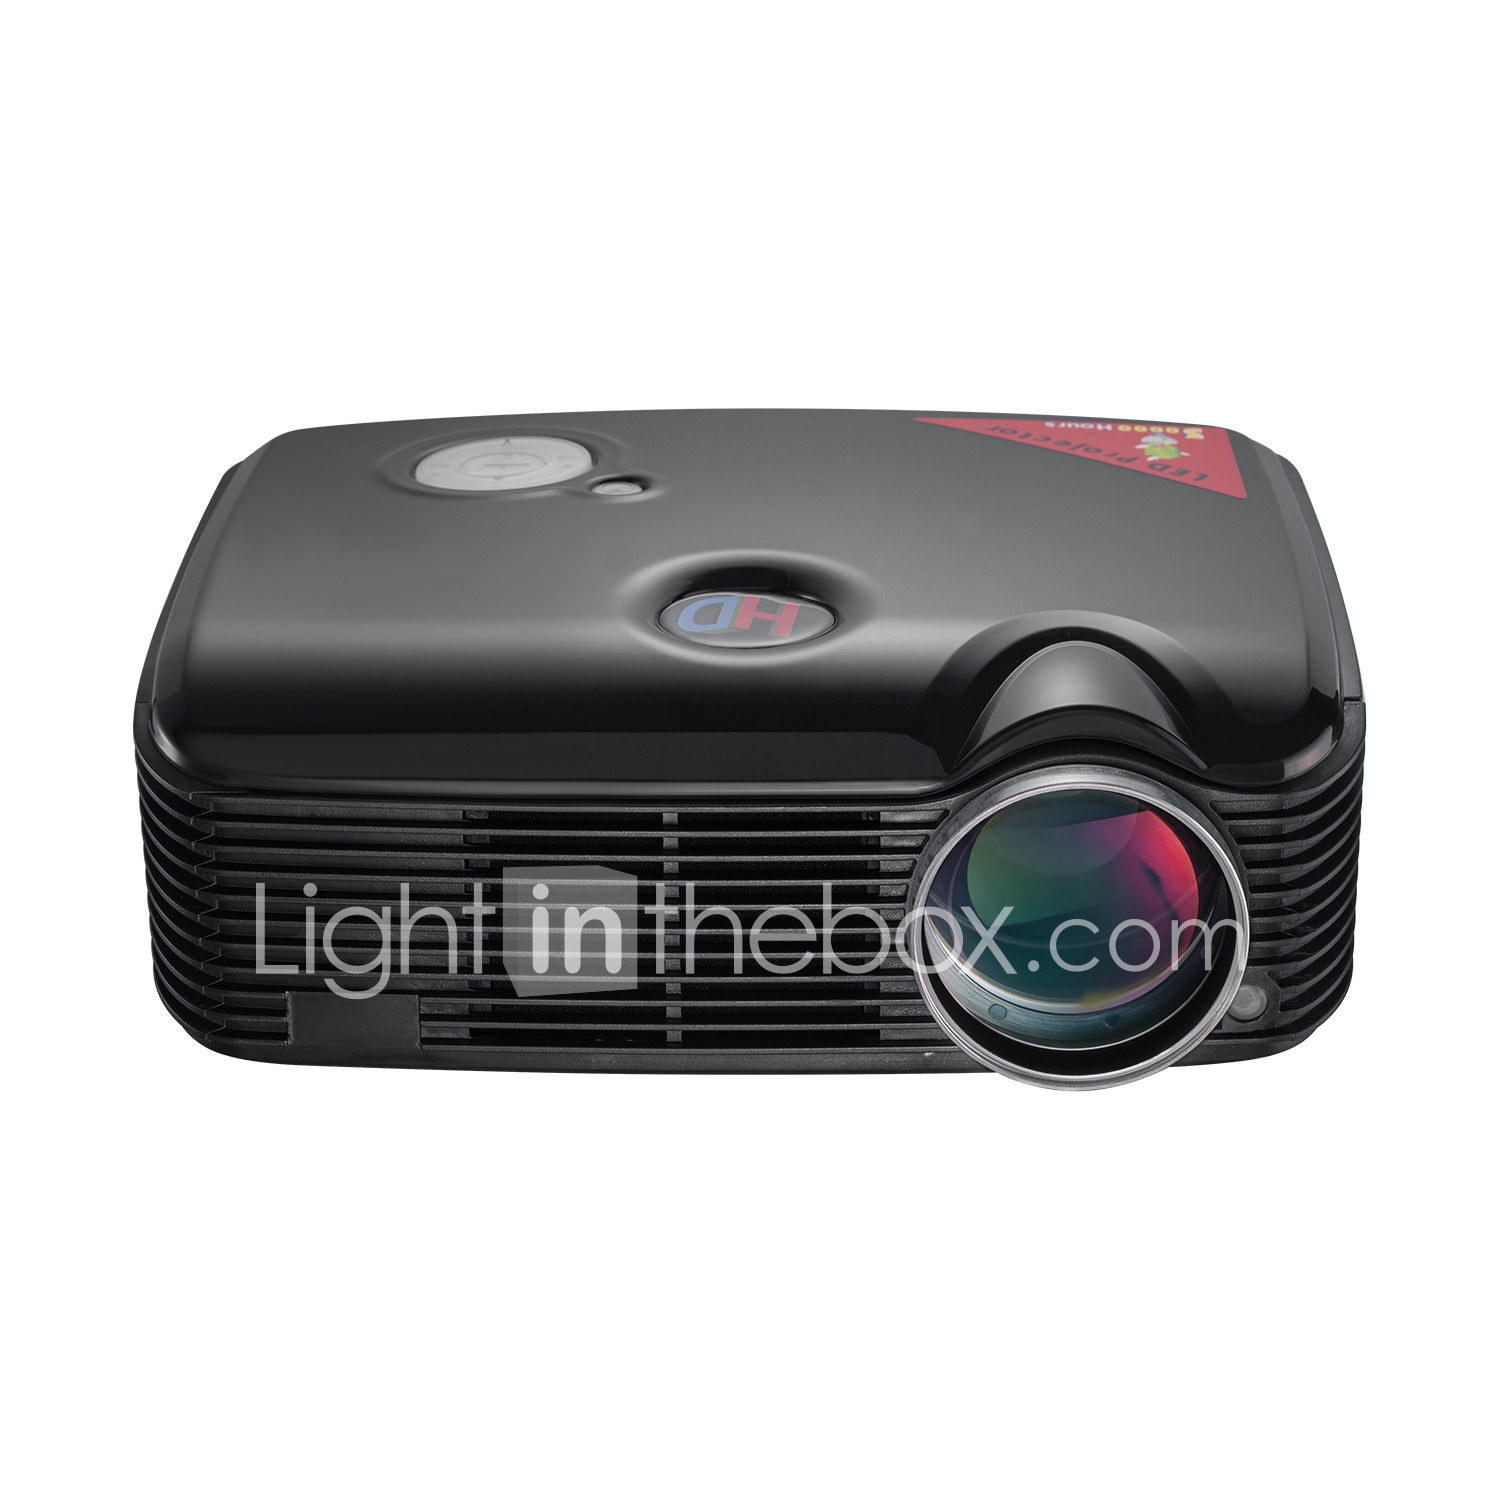 Copyright 169 2017 the design co all rights reserved - New Df 41 Lcd Home Theater Projector Svga 800x600 3500lm